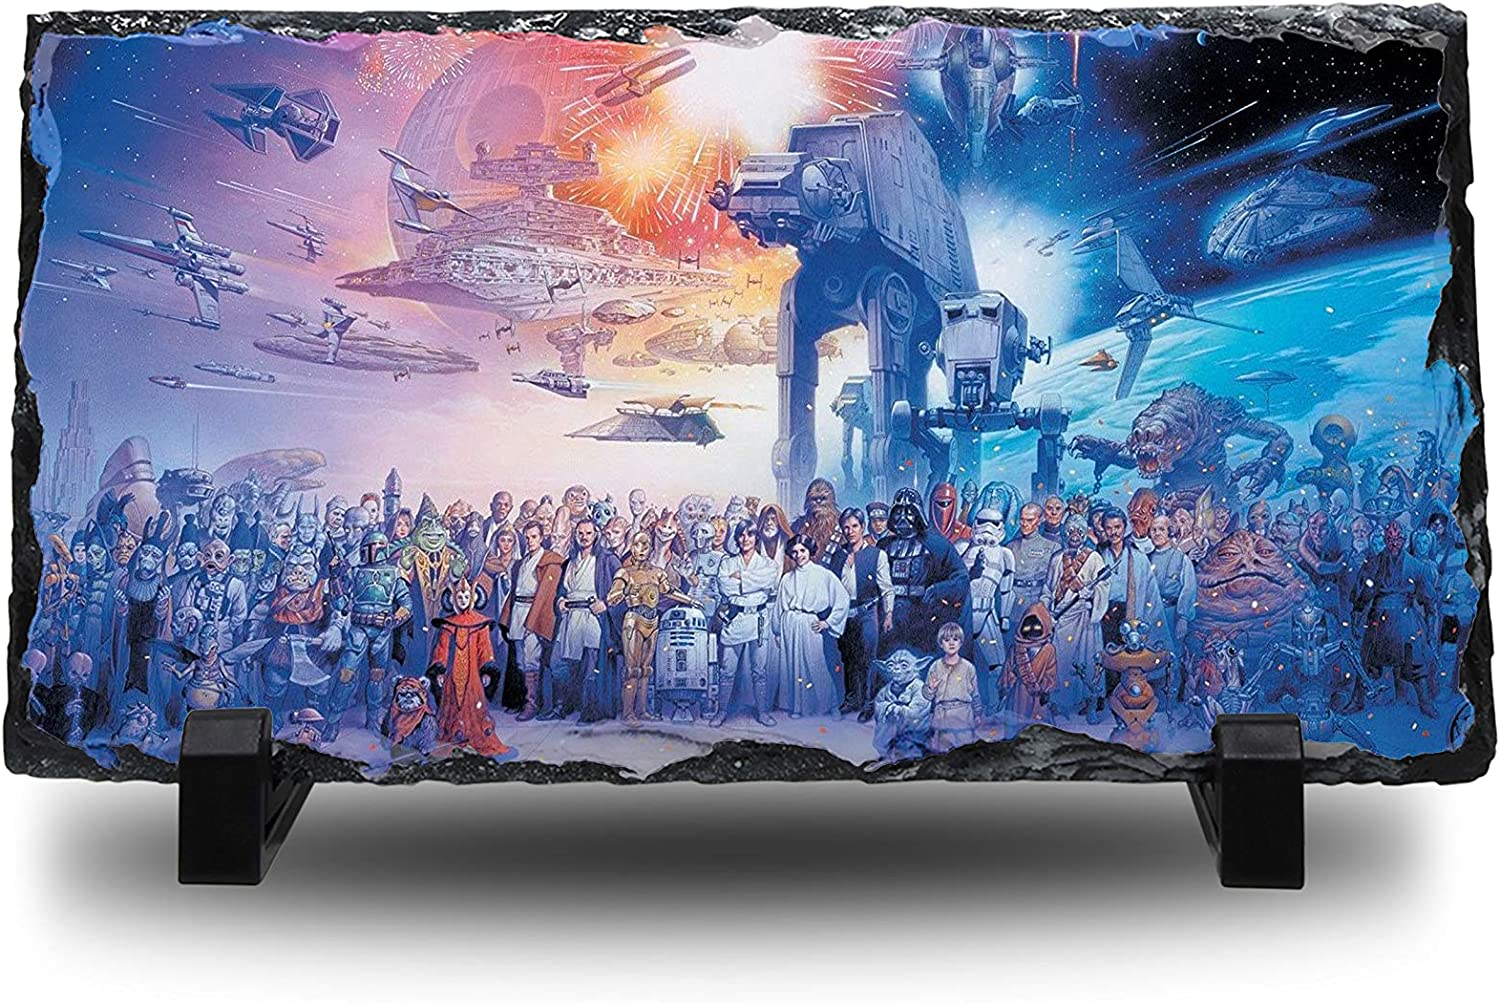 Generations Natural Rock Slate with Stand Anime Desk Art Gift UK Star Wars